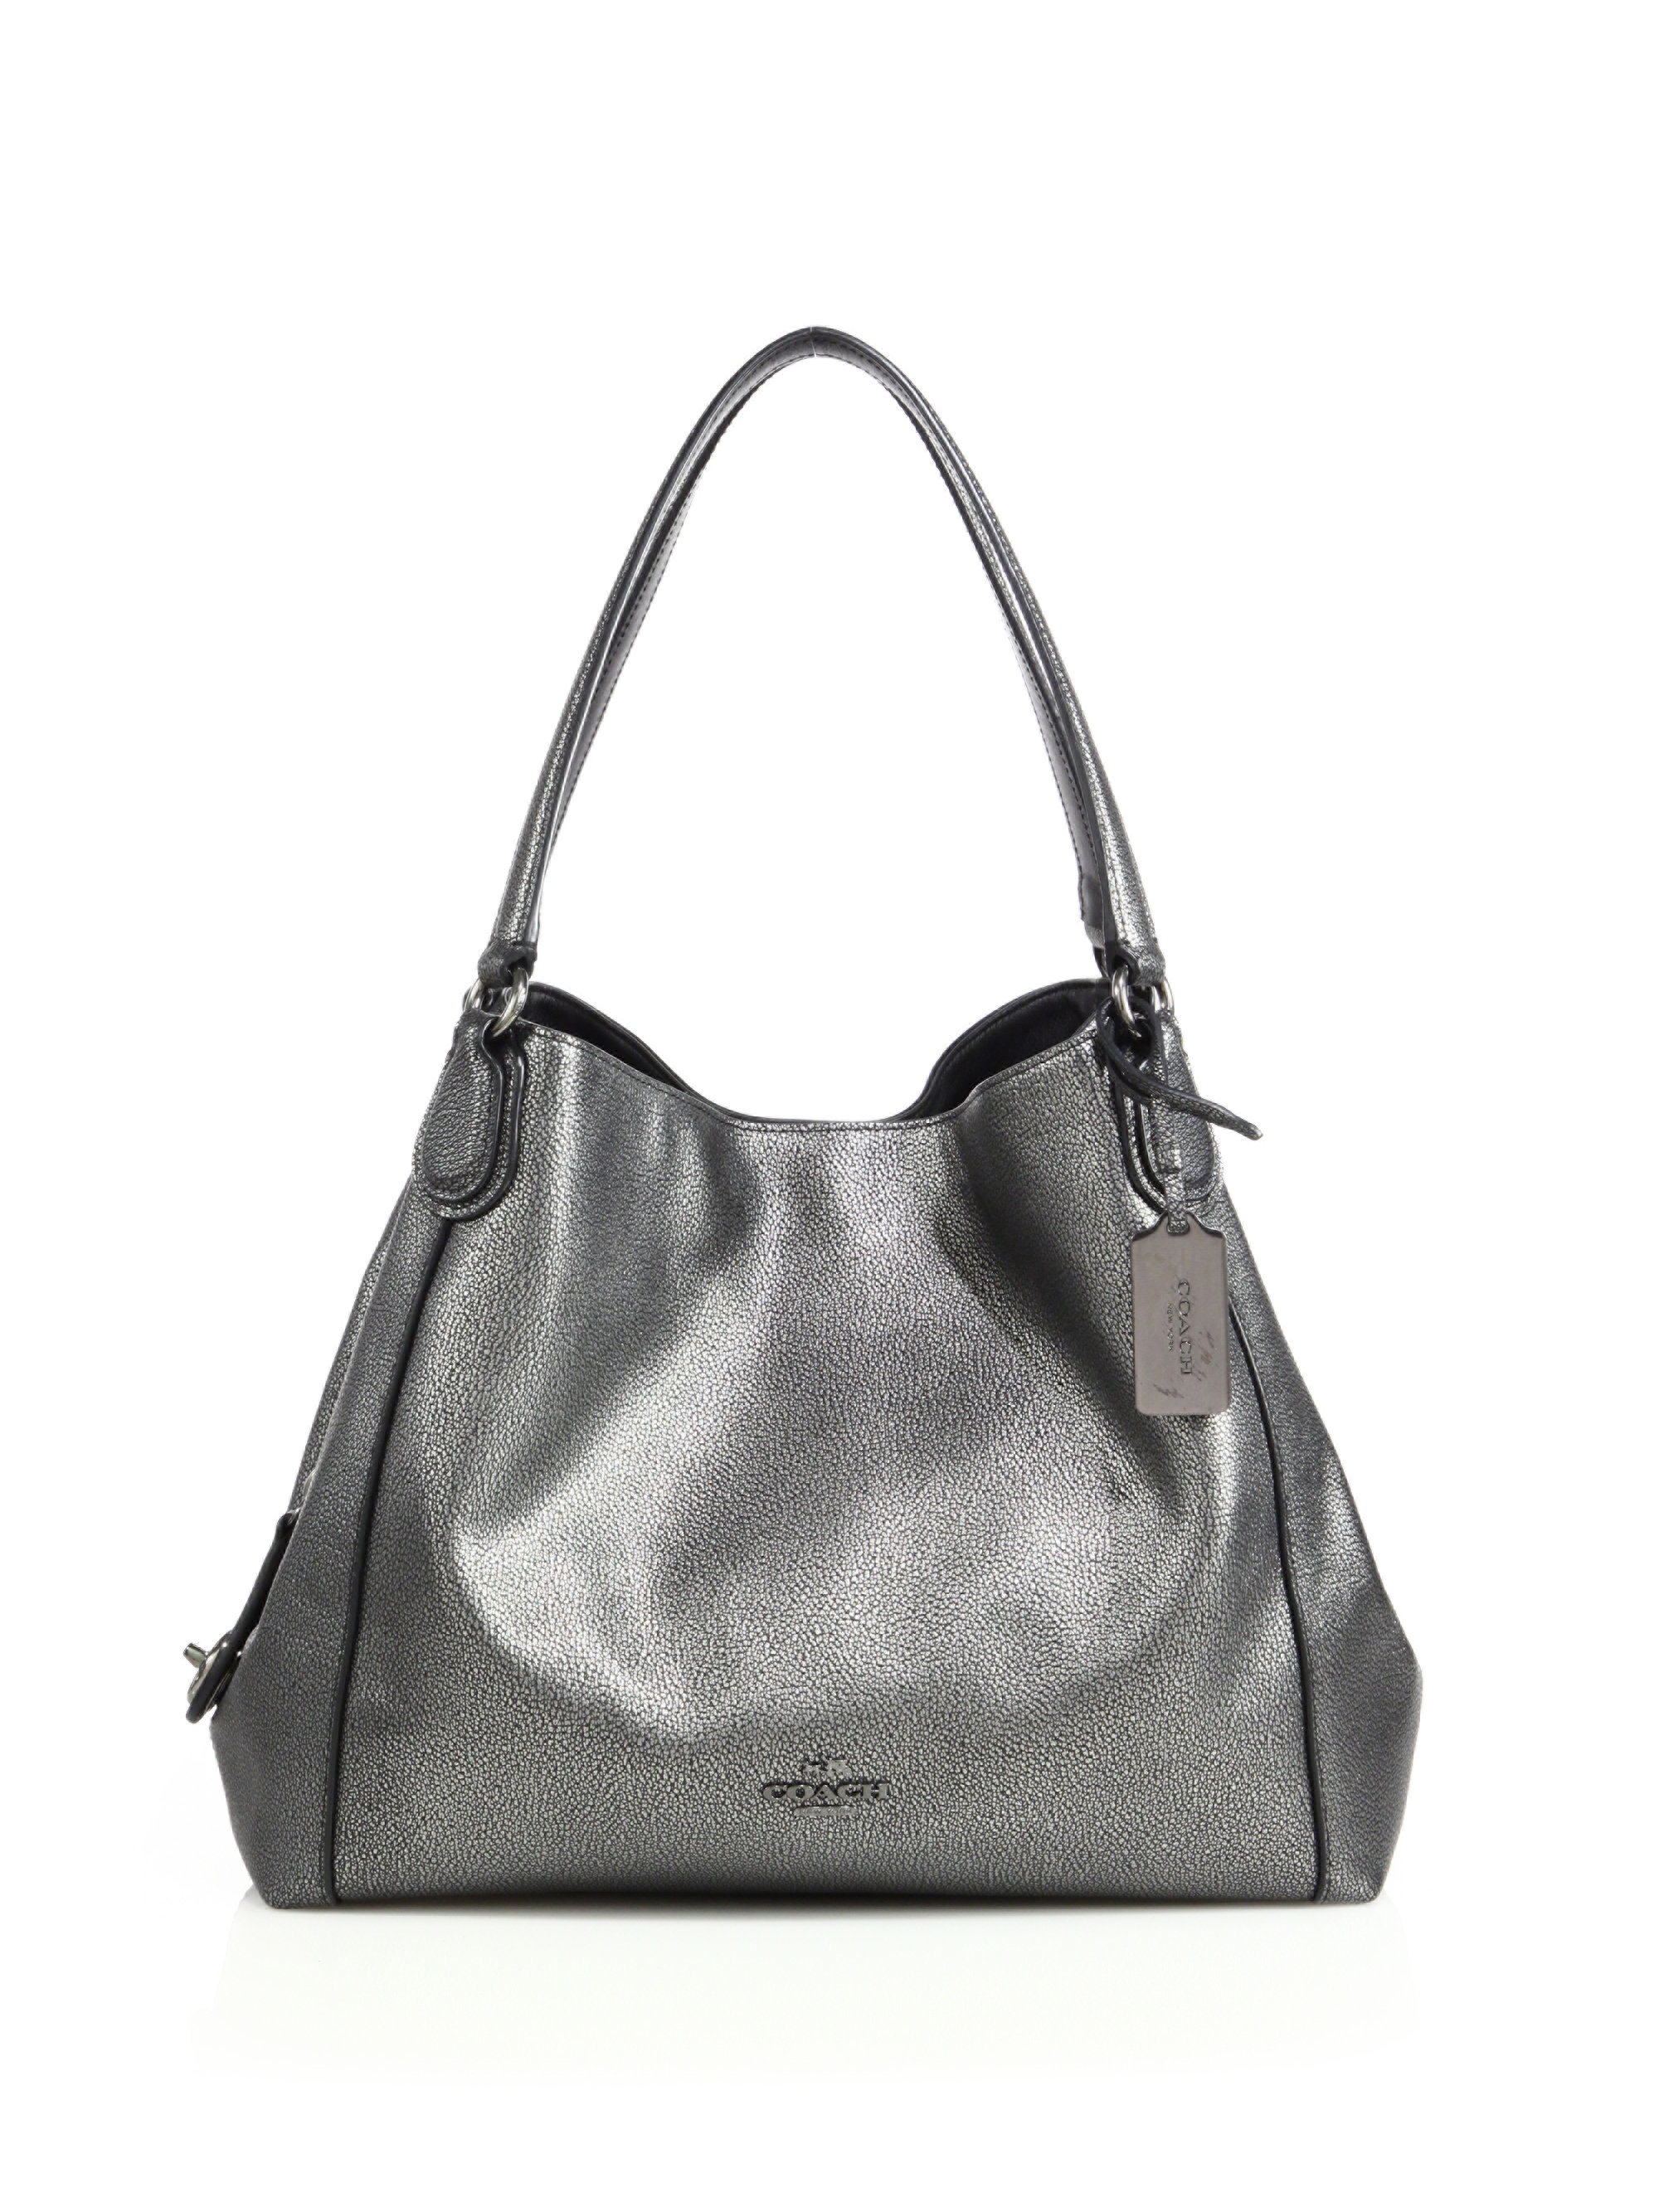 e057d37a942b8f Coach Edie Shoulder Bag In Metallic Leather | Stanford Center for ...